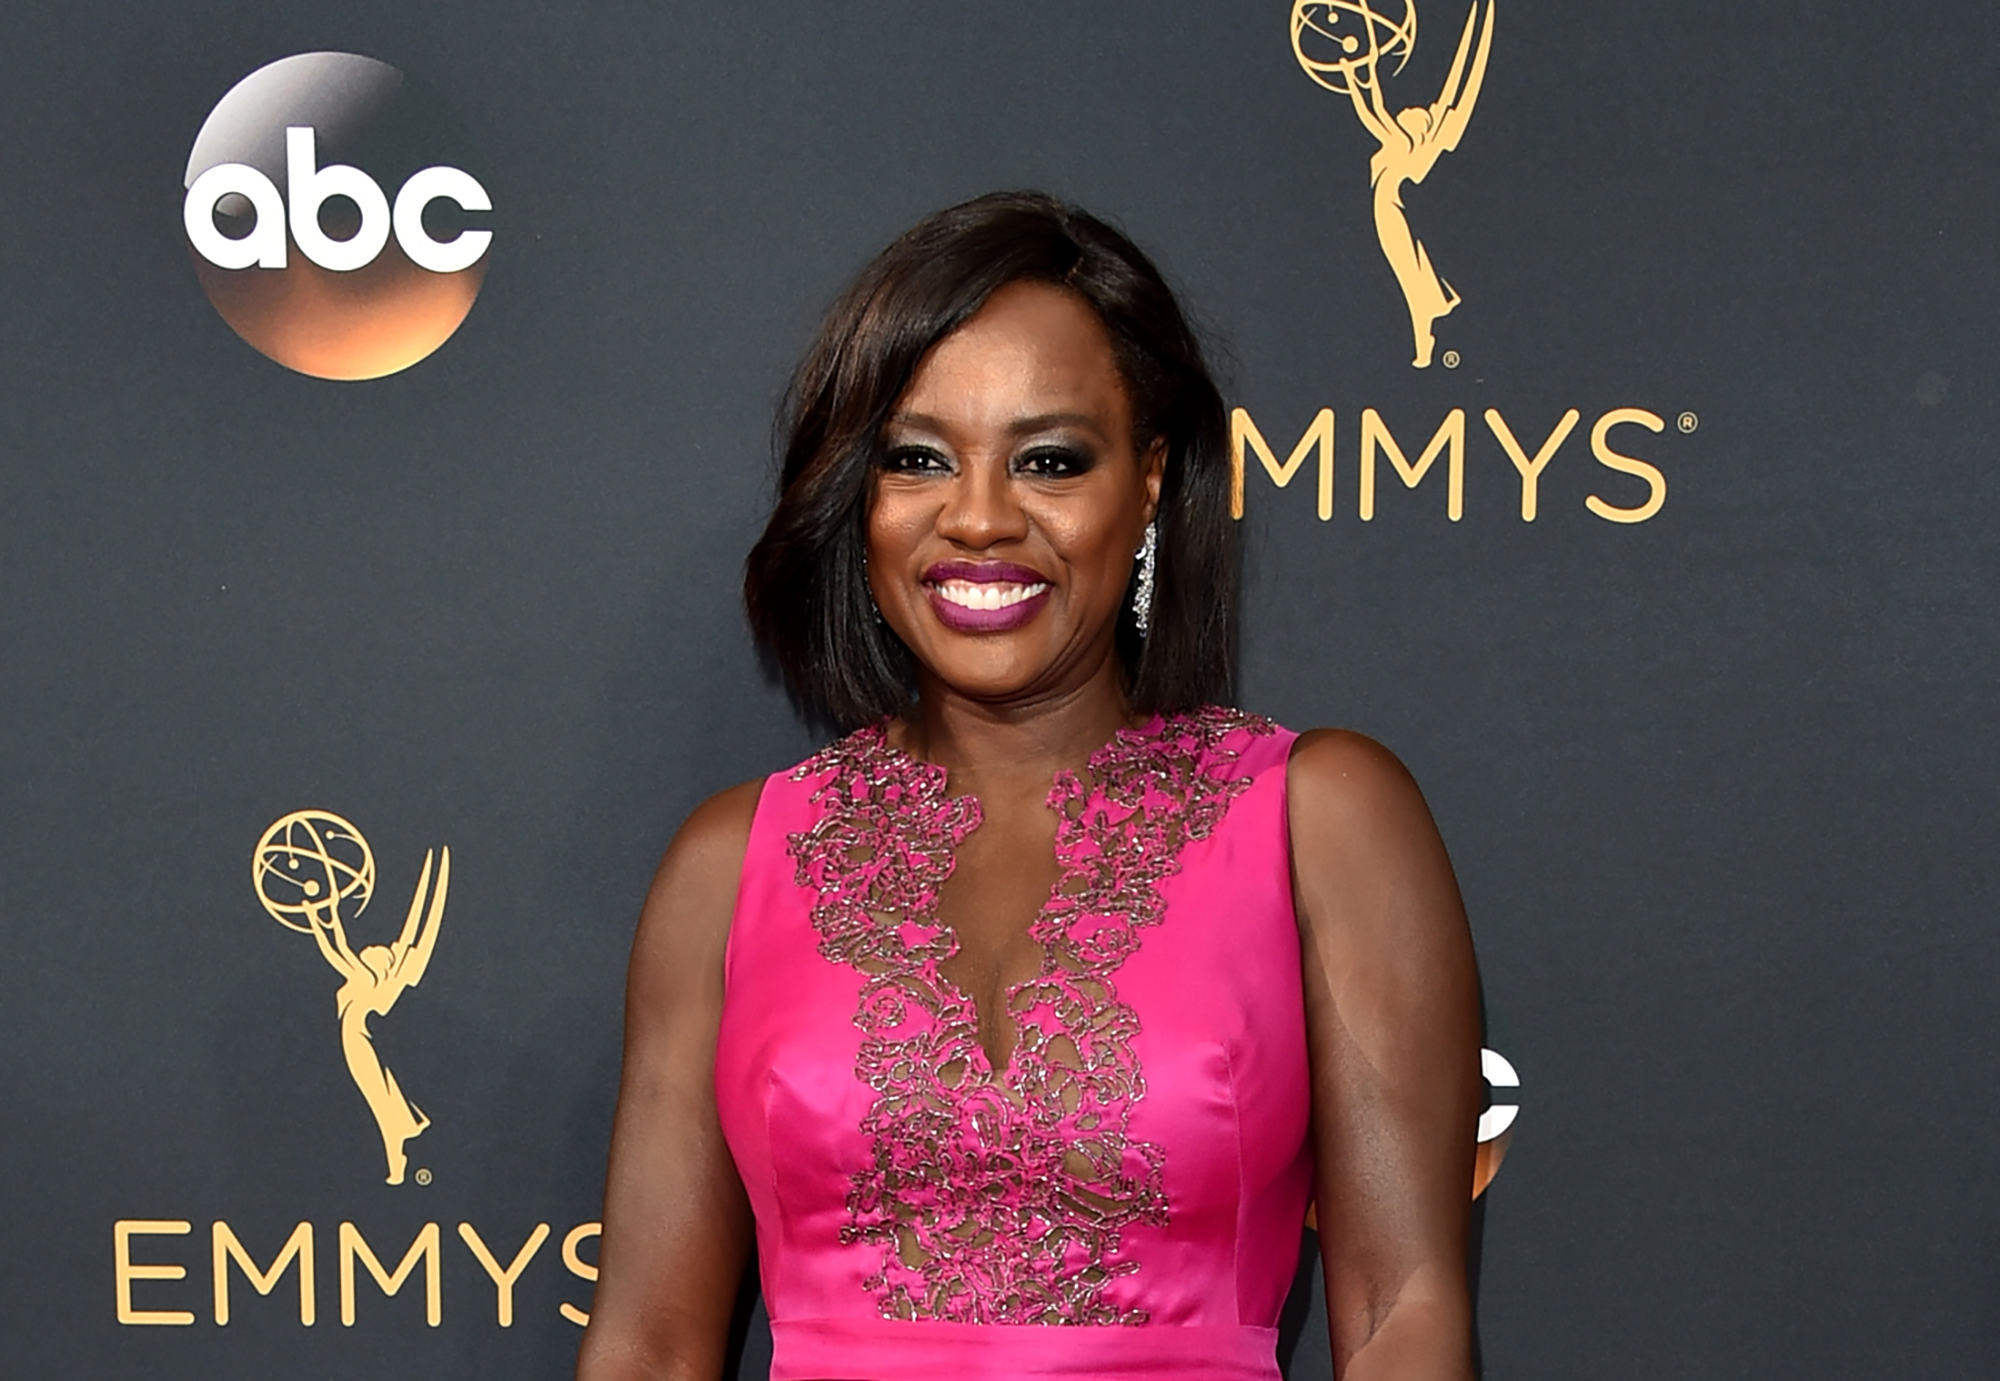 Viola Davis arrives at the 68th Annual Primetime Emmy Awards at Microsoft Theater on September 18, 2016 in Los Angeles, California.  (Photo by John Shearer/WireImage)